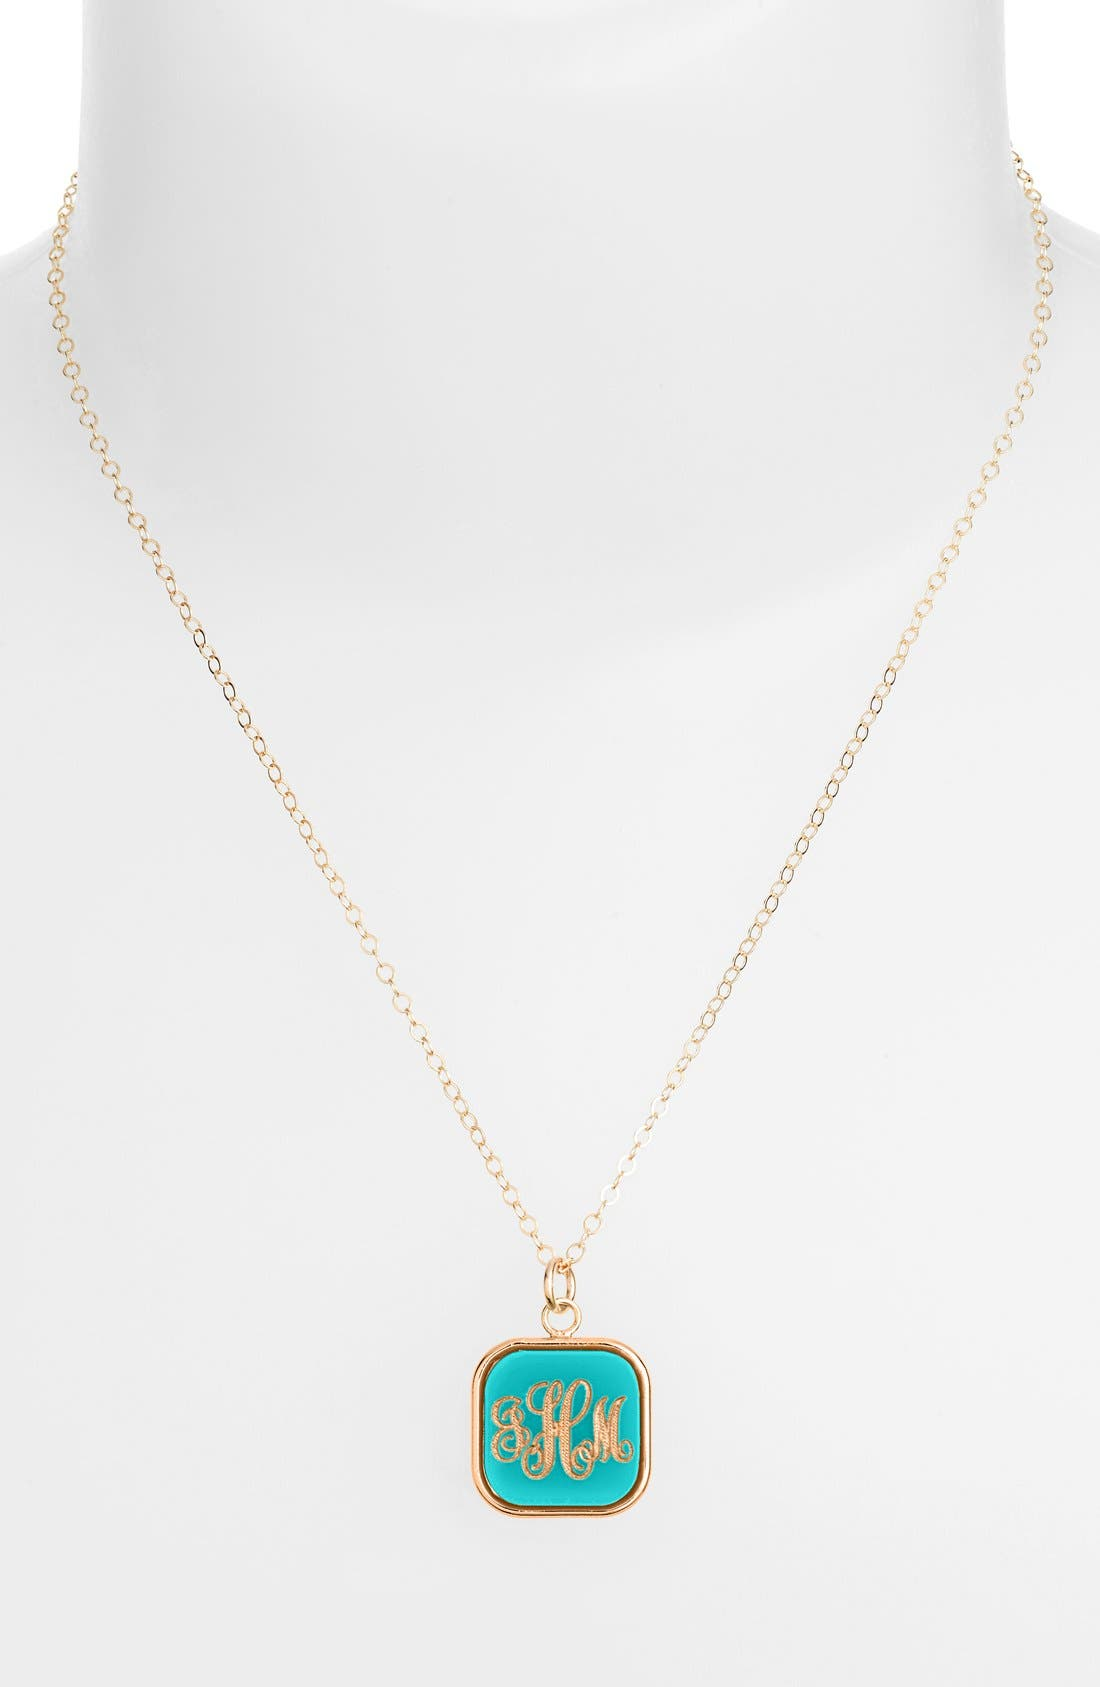 MOON AND LOLA 'Vineyard' Personalized Monogram Pendant Necklace in Robins Egg